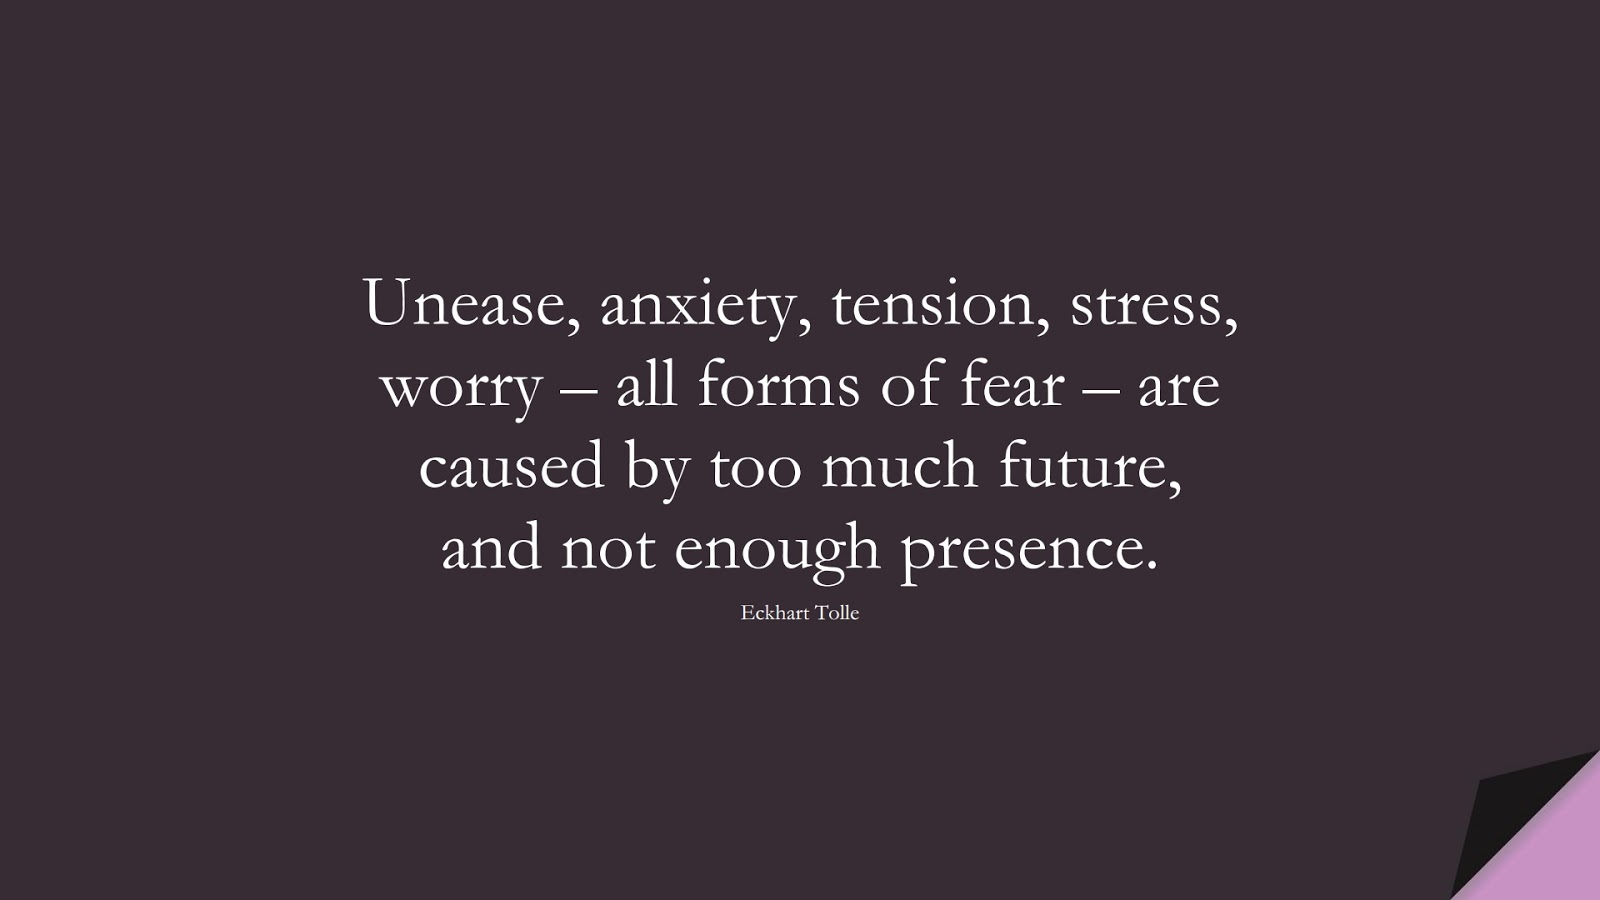 Unease, anxiety, tension, stress, worry – all forms of fear – are caused by too much future, and not enough presence. (Eckhart Tolle);  #StressQuotes